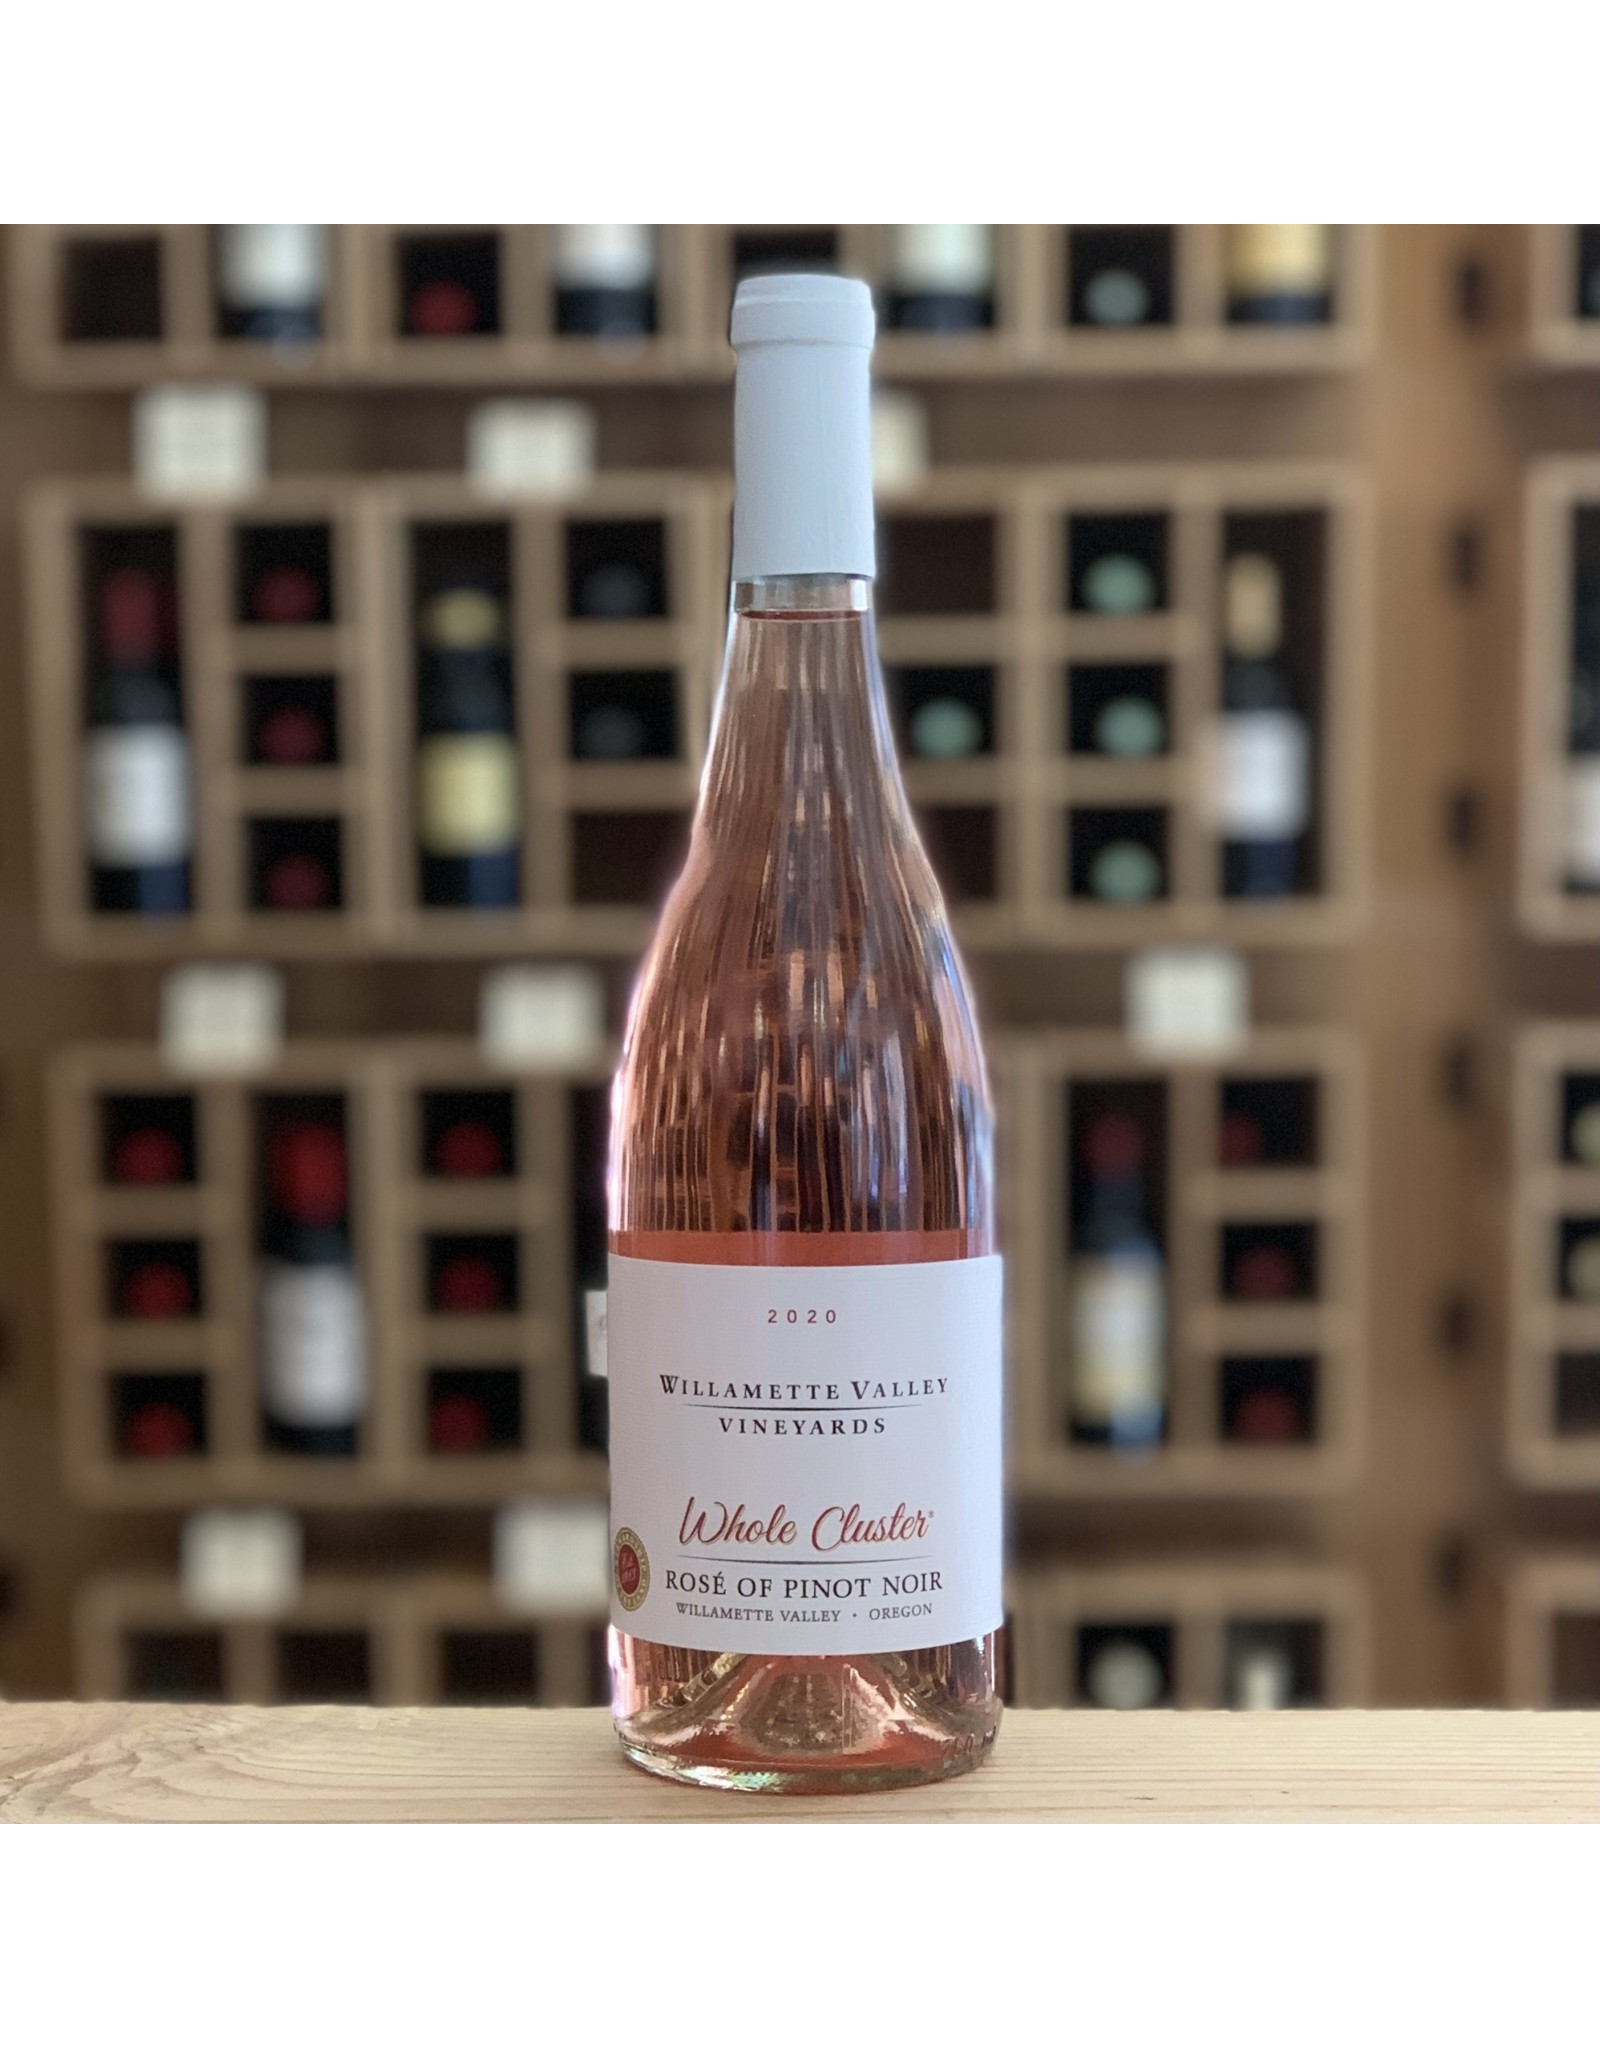 Willamette Valley Willamette Valley Vineyards Whole Cluster Rose of Pinot Noir 2020 - Willamette Valley, Oregon